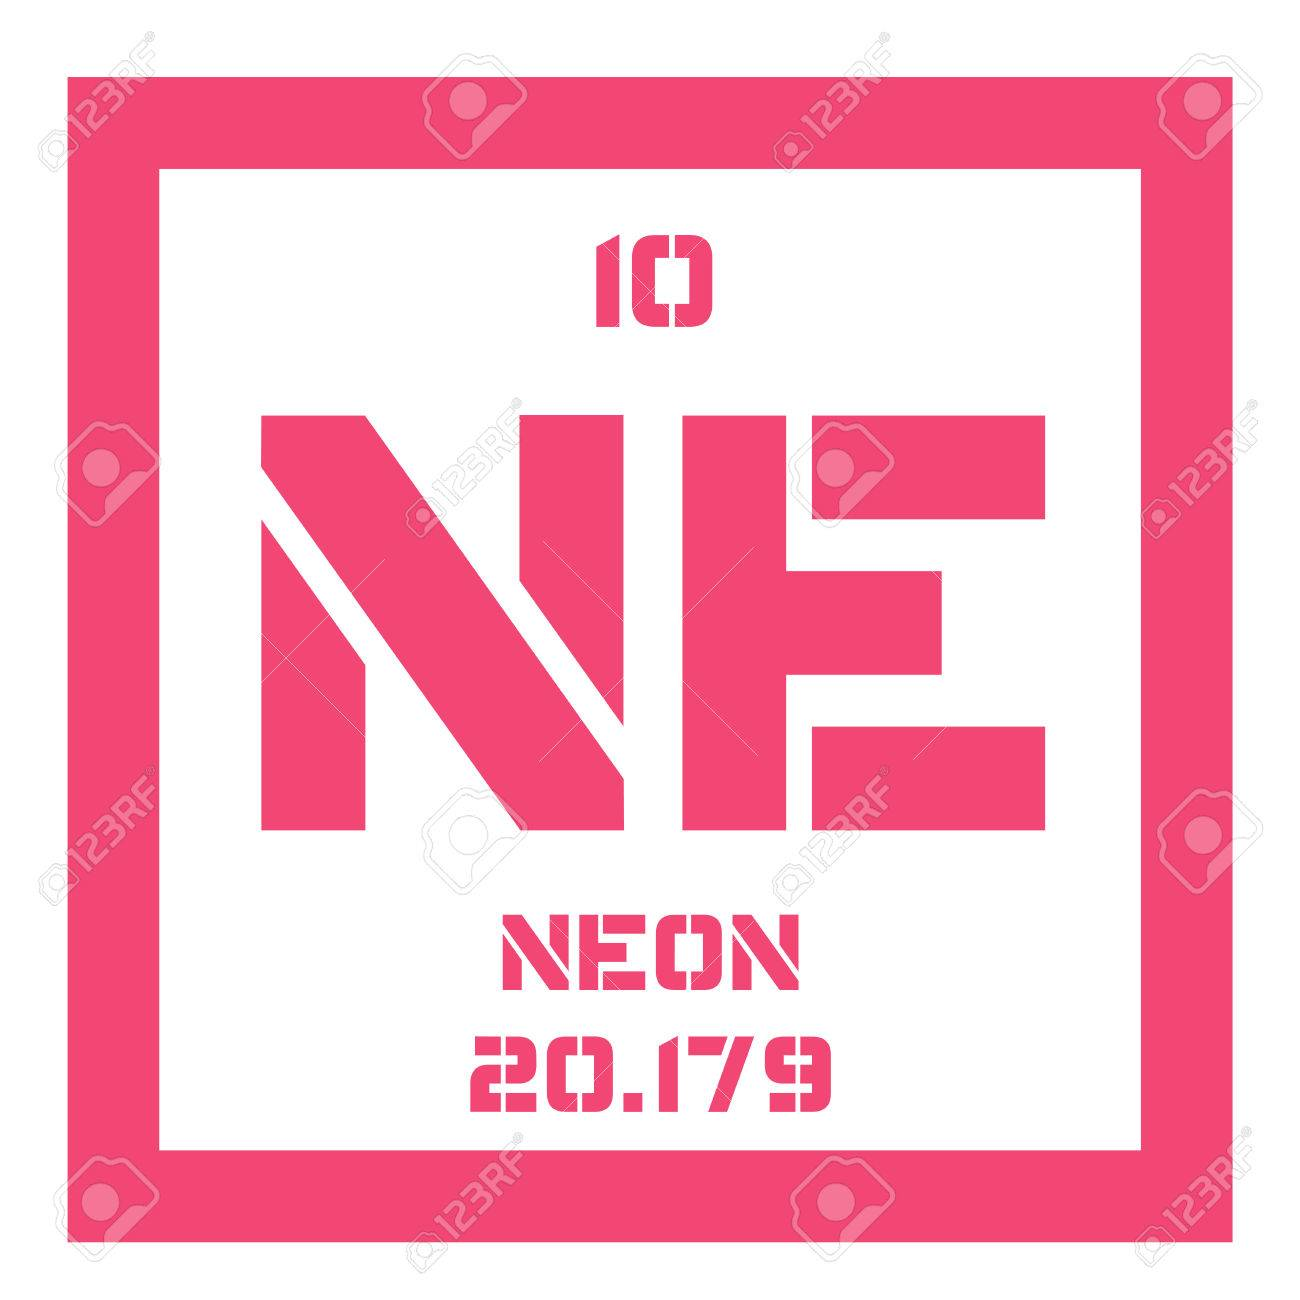 neon chemical element belongs to noble gases group of the periodic table colorless - Periodic Table Of Elements Neon